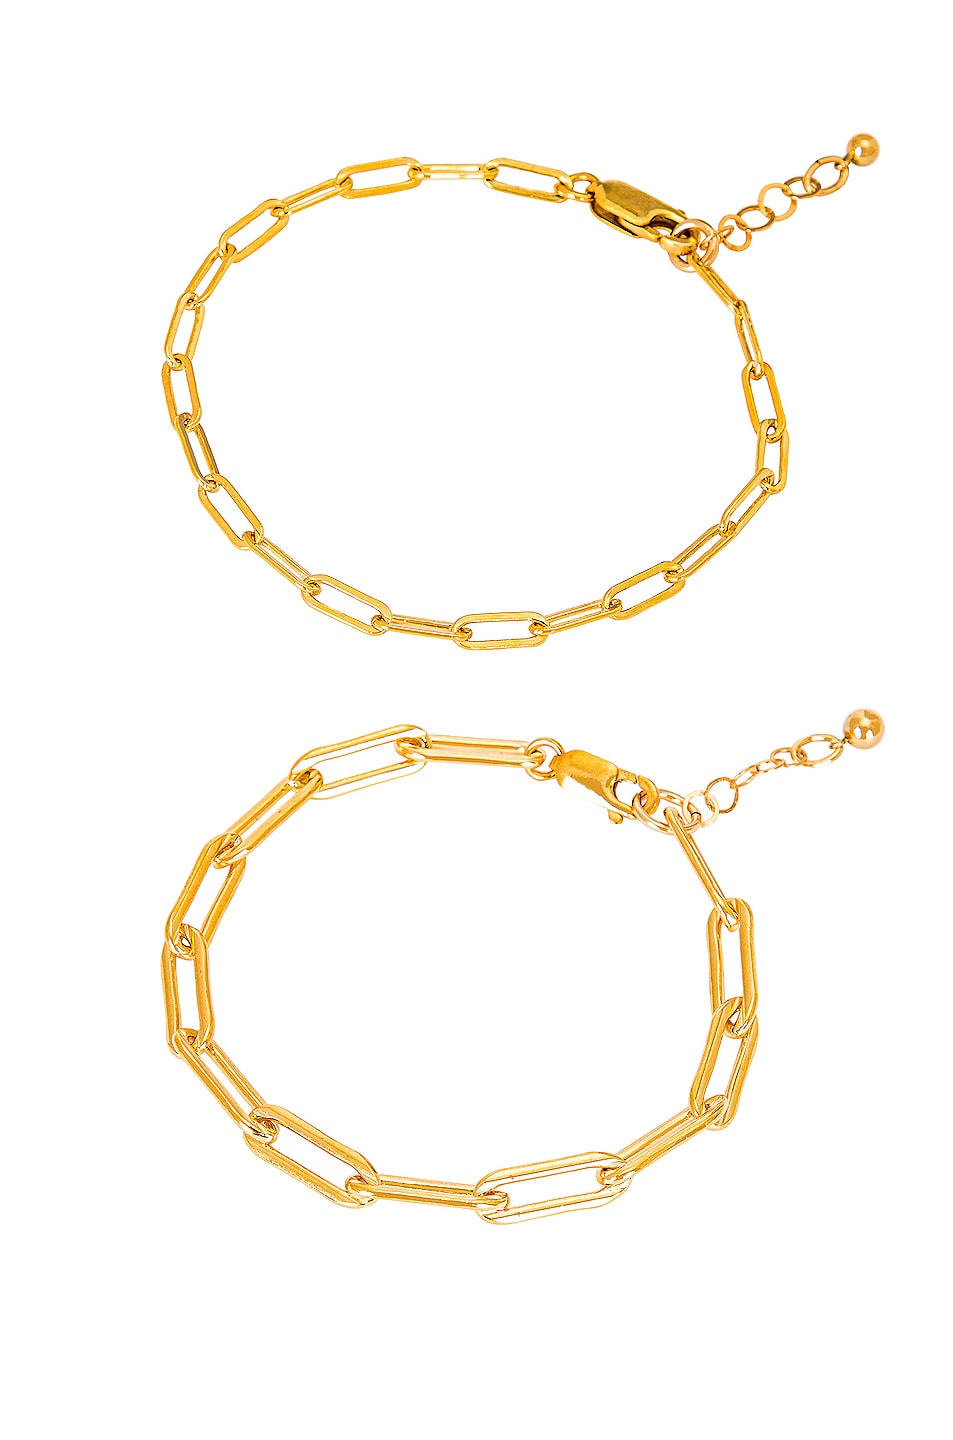 Image 1 of Jordan Road Jewelry for FWRD Le Duo Bracelet Stack in Gold